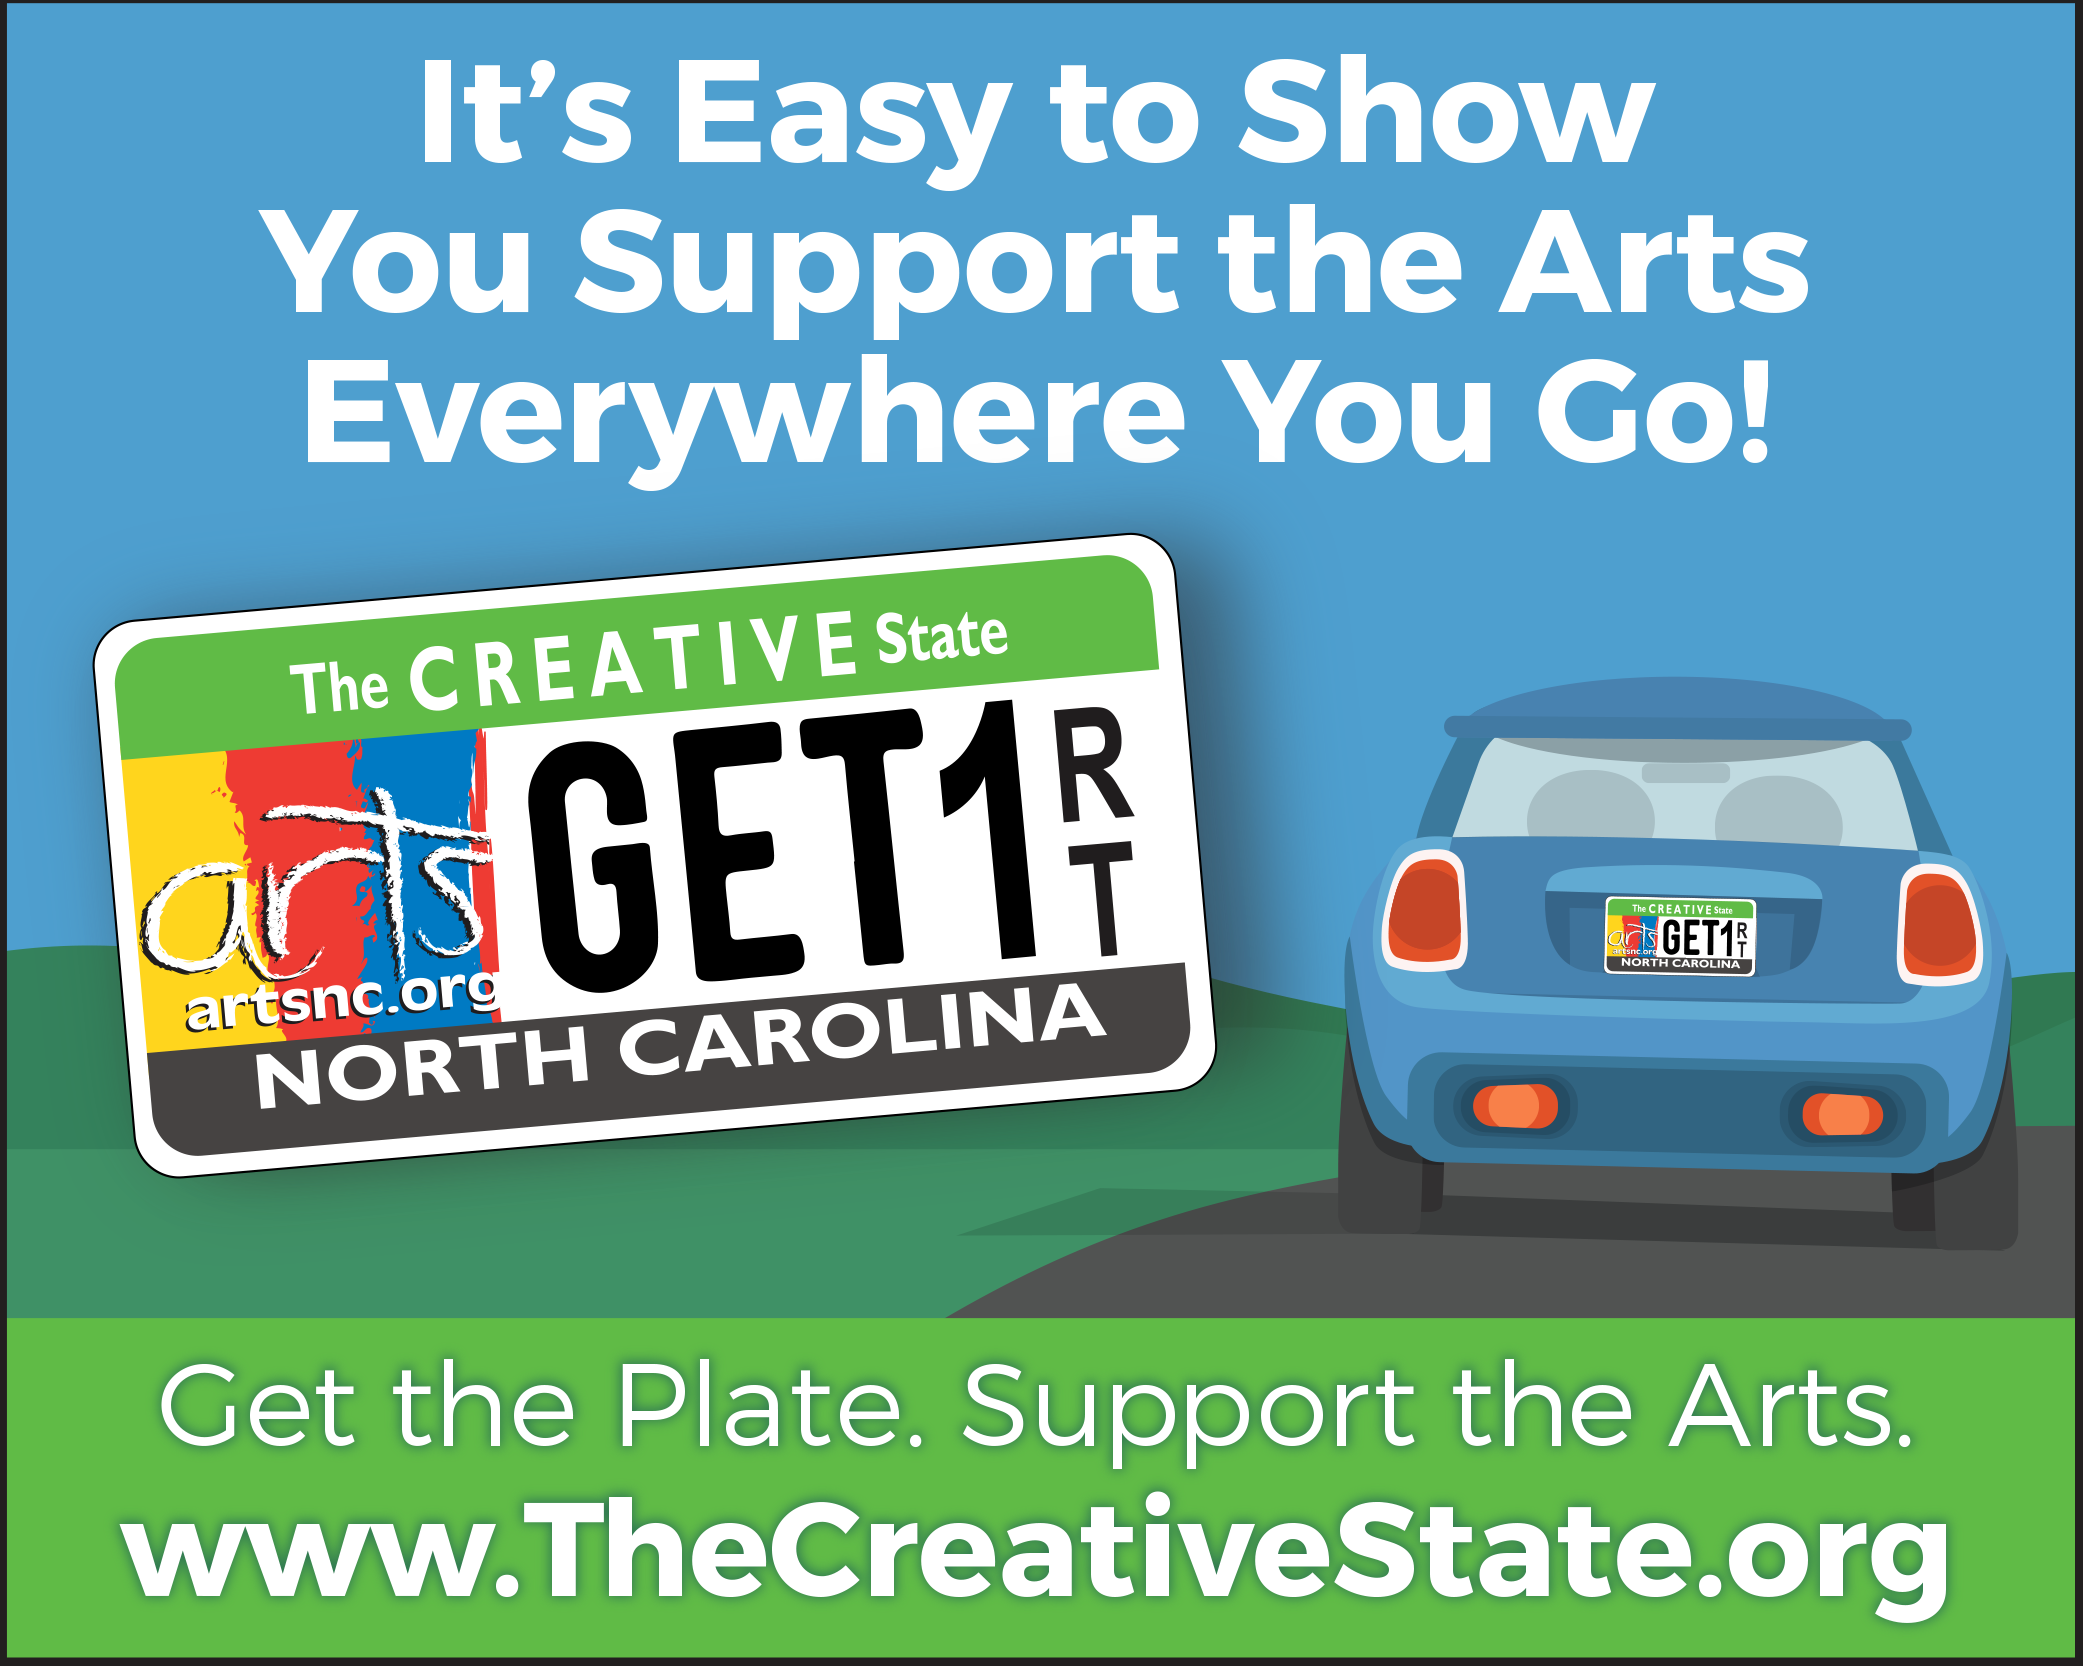 Drive the Arts Forward - www.thecreativestate.org